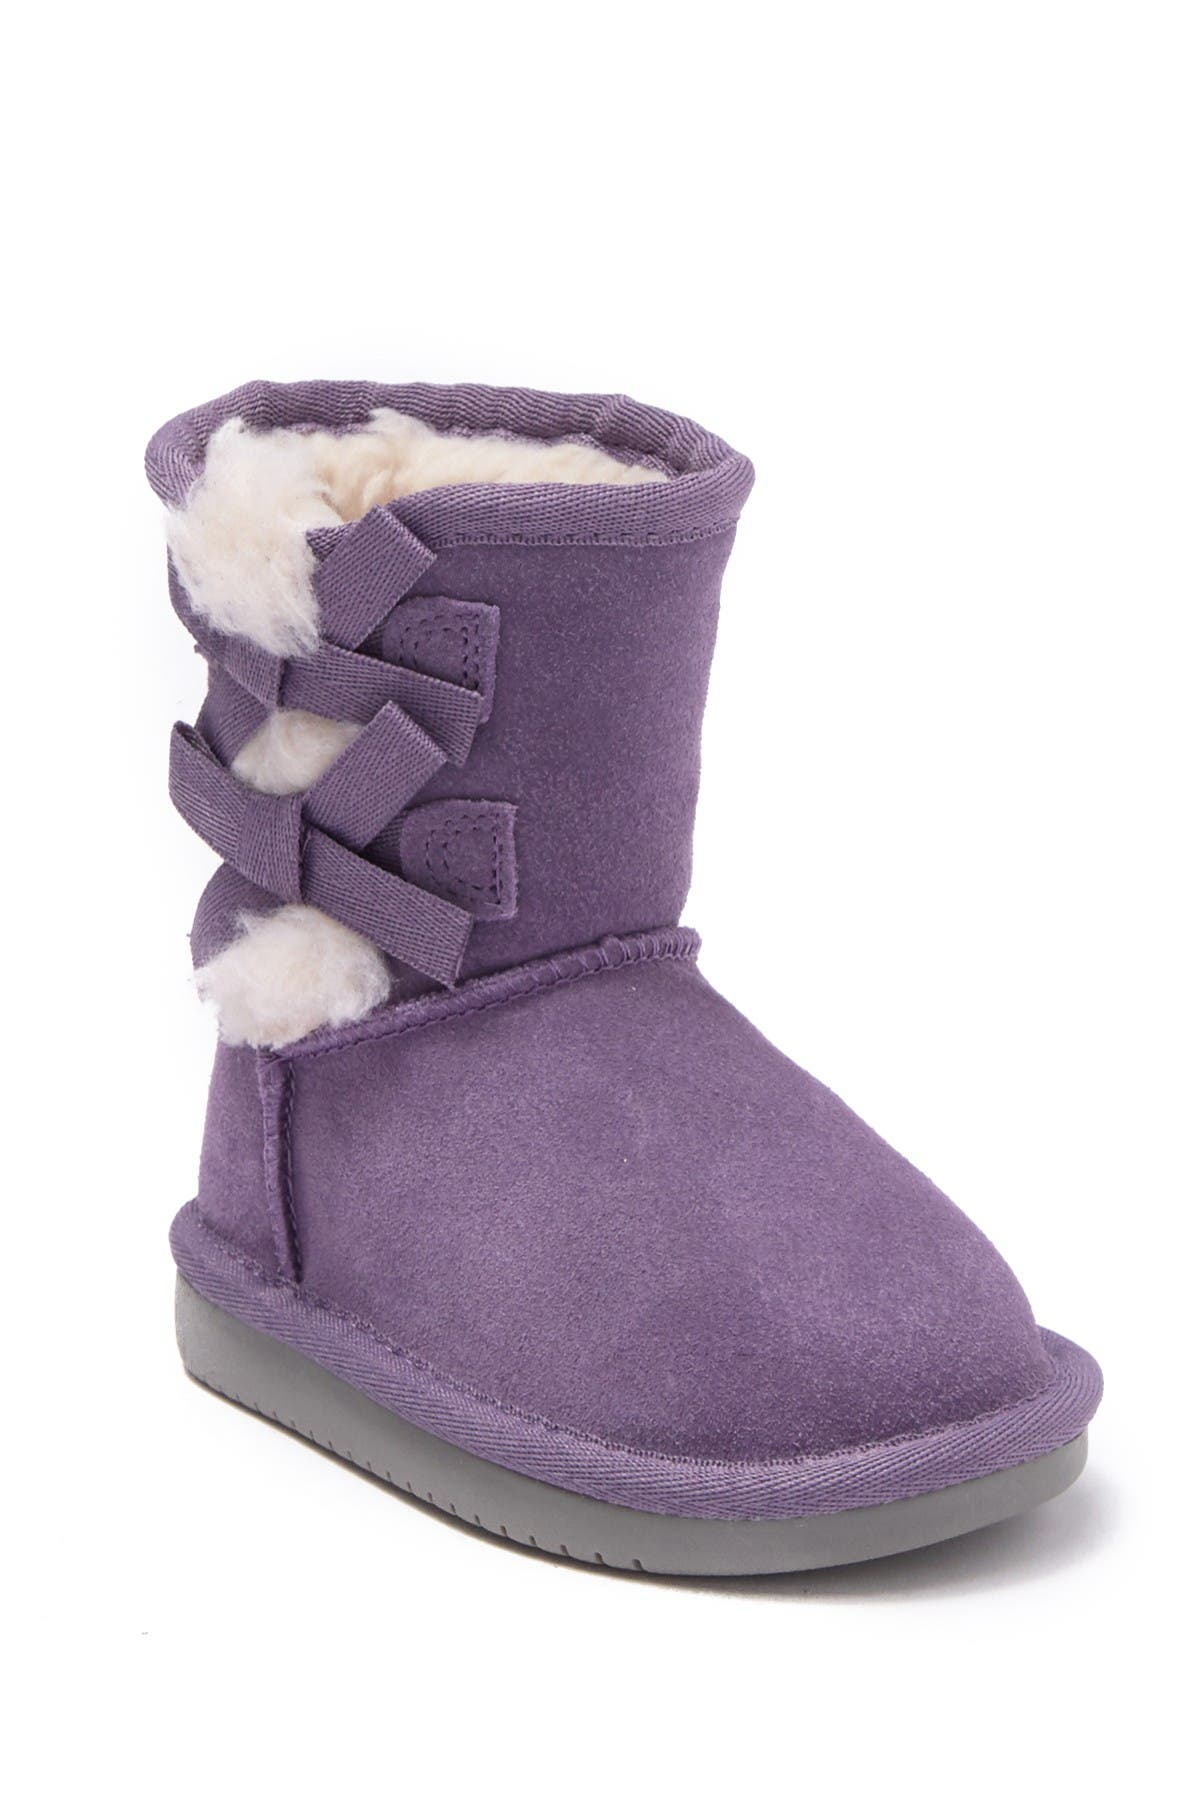 Image of KOOLABURRA BY UGG Victoria Bow Faux Fur & Genuine Sheepskin Trimmed Short Boot